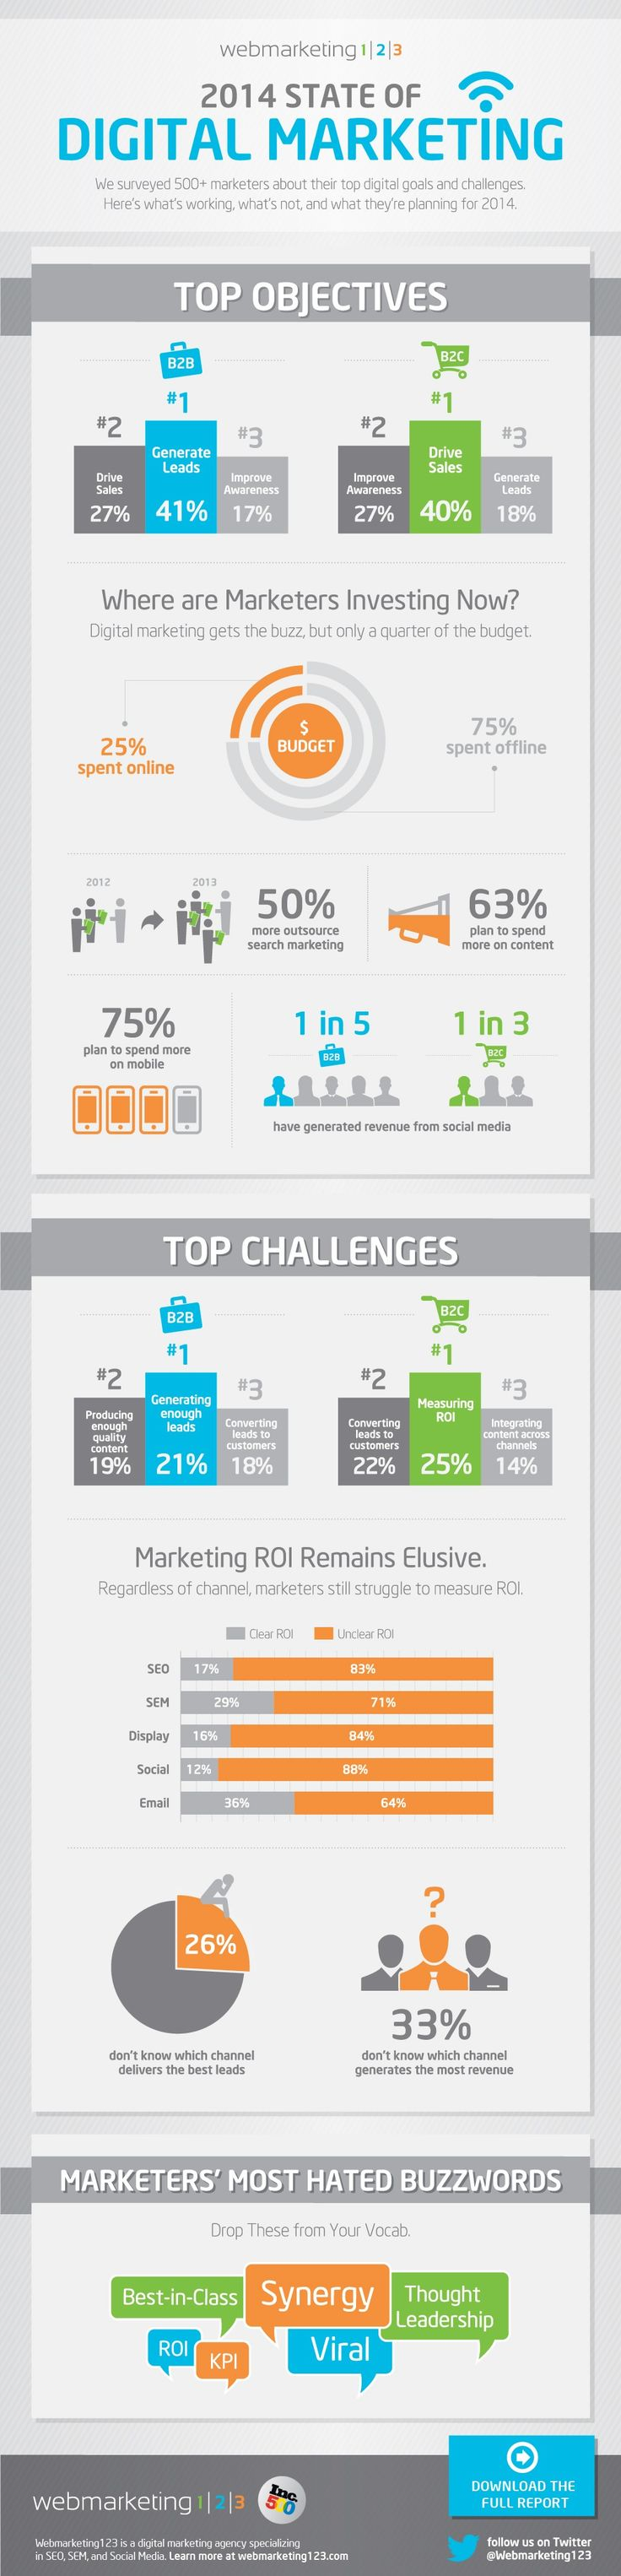 State of Digital Marketing 2014 [Infographic] - SocialTimes